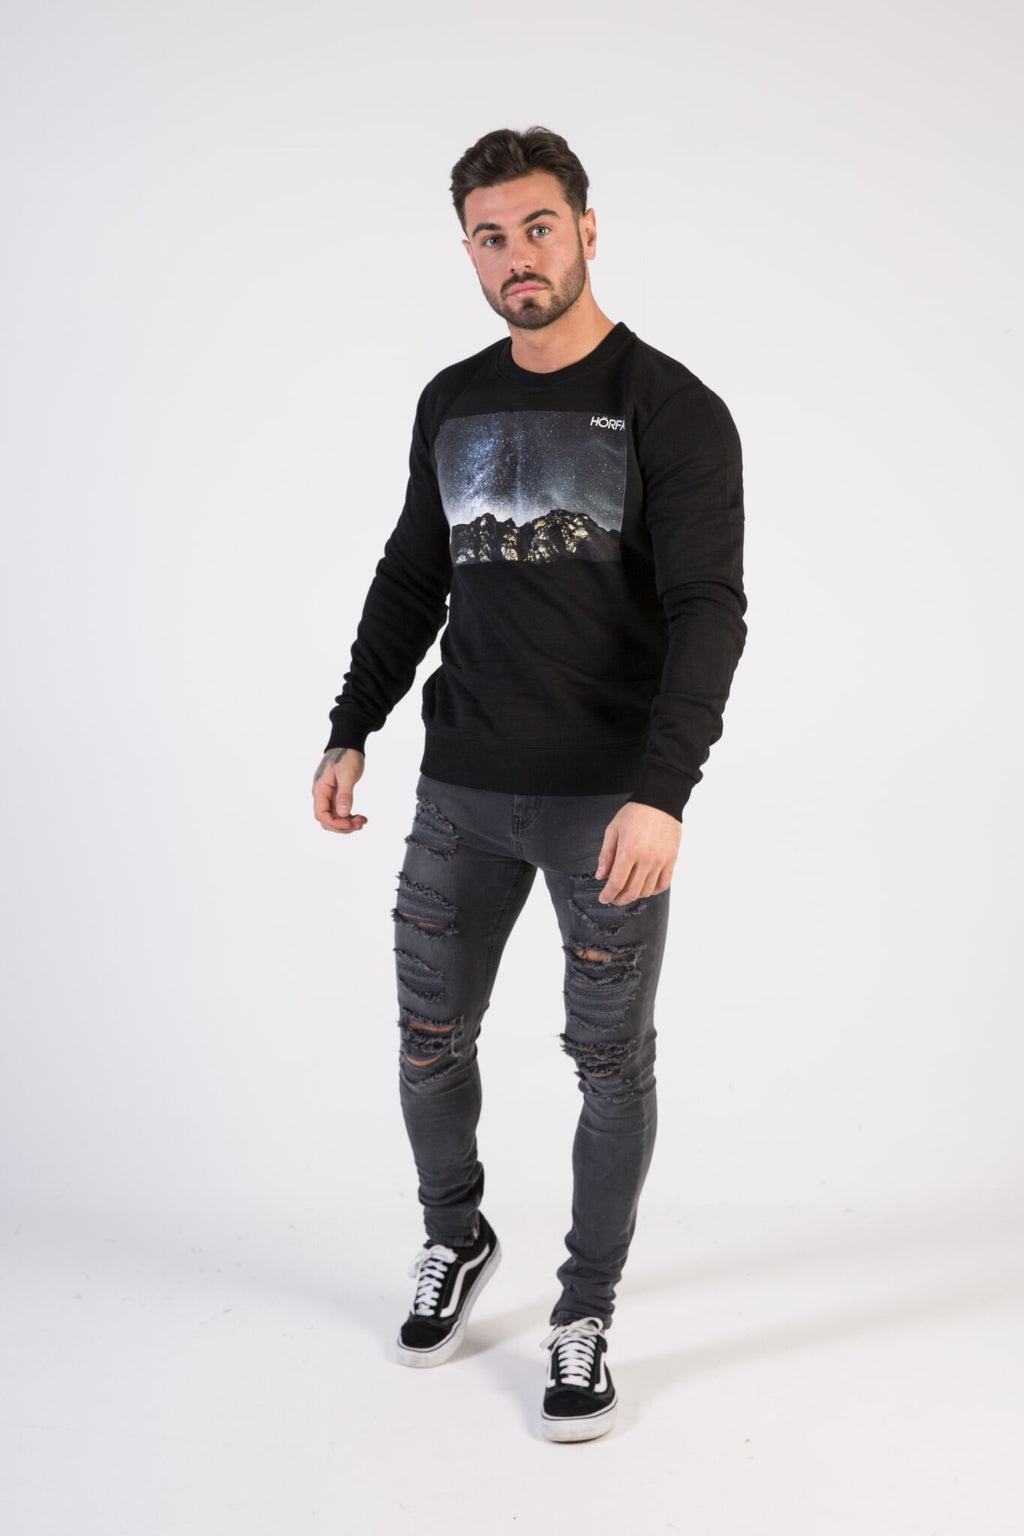 STARGAZER Sweatshirt - HÖRFA is a men's global fashion brand that provides products such as Fashionable Watches, Wallets, Sunglasses, Belts, Beard and Male Grooming Products